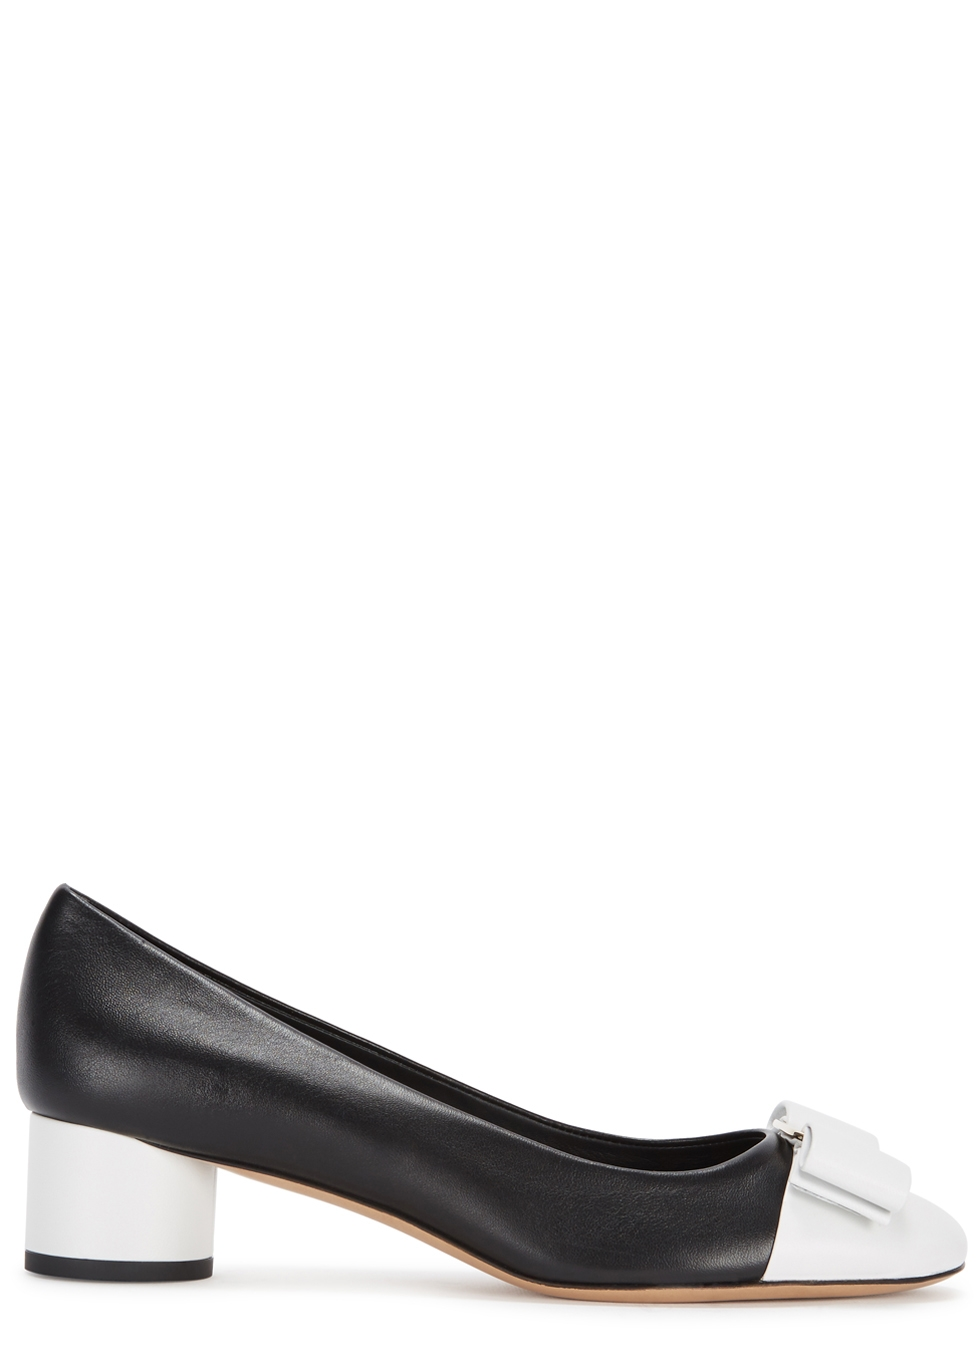 IVREA MONOCHROME LEATHER PUMPS